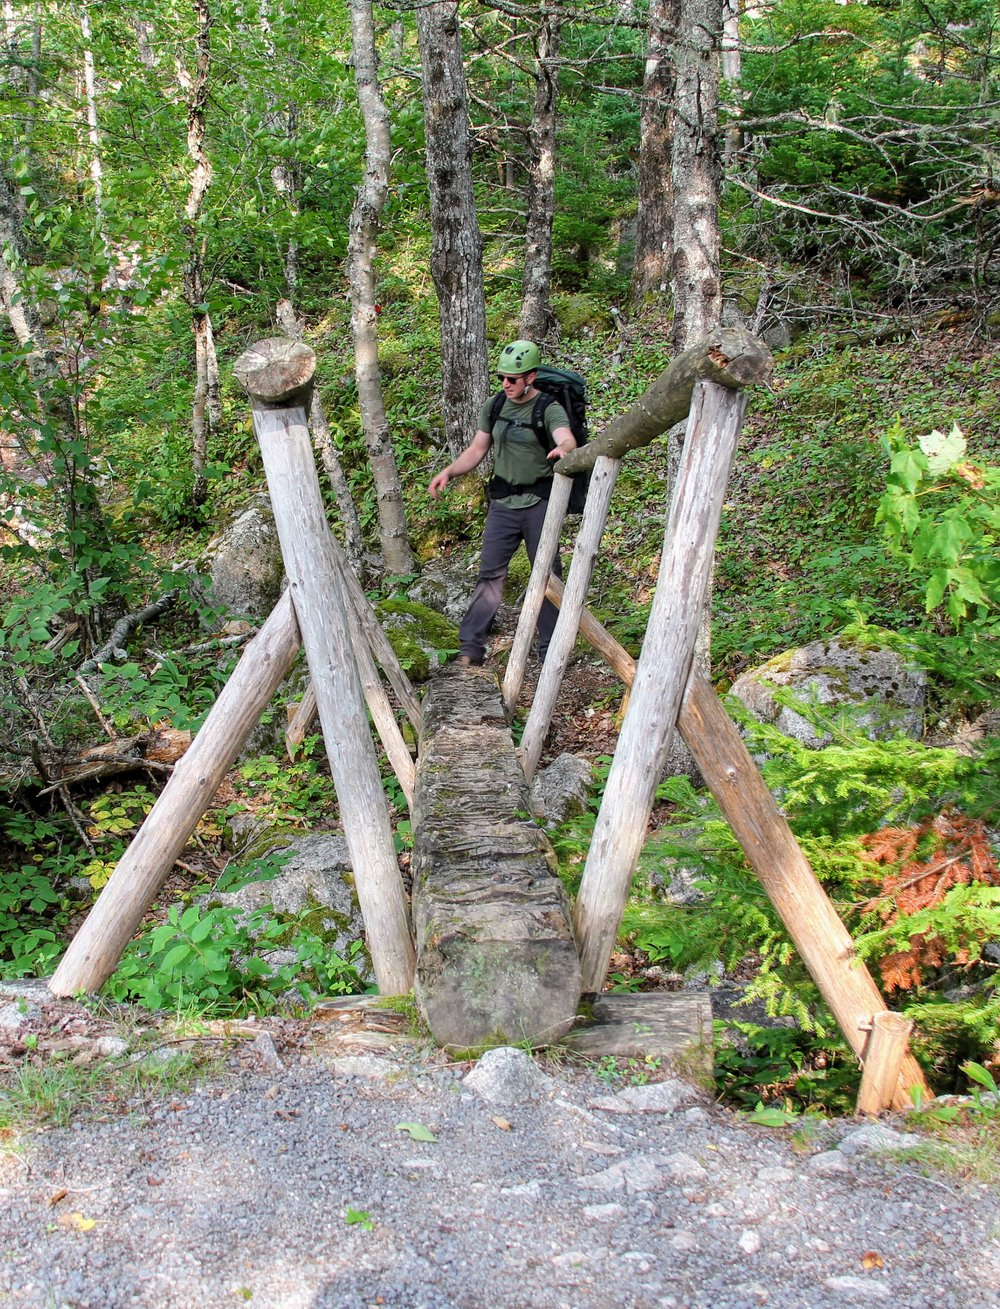 Wooden Bridge marks the start of the forest hike